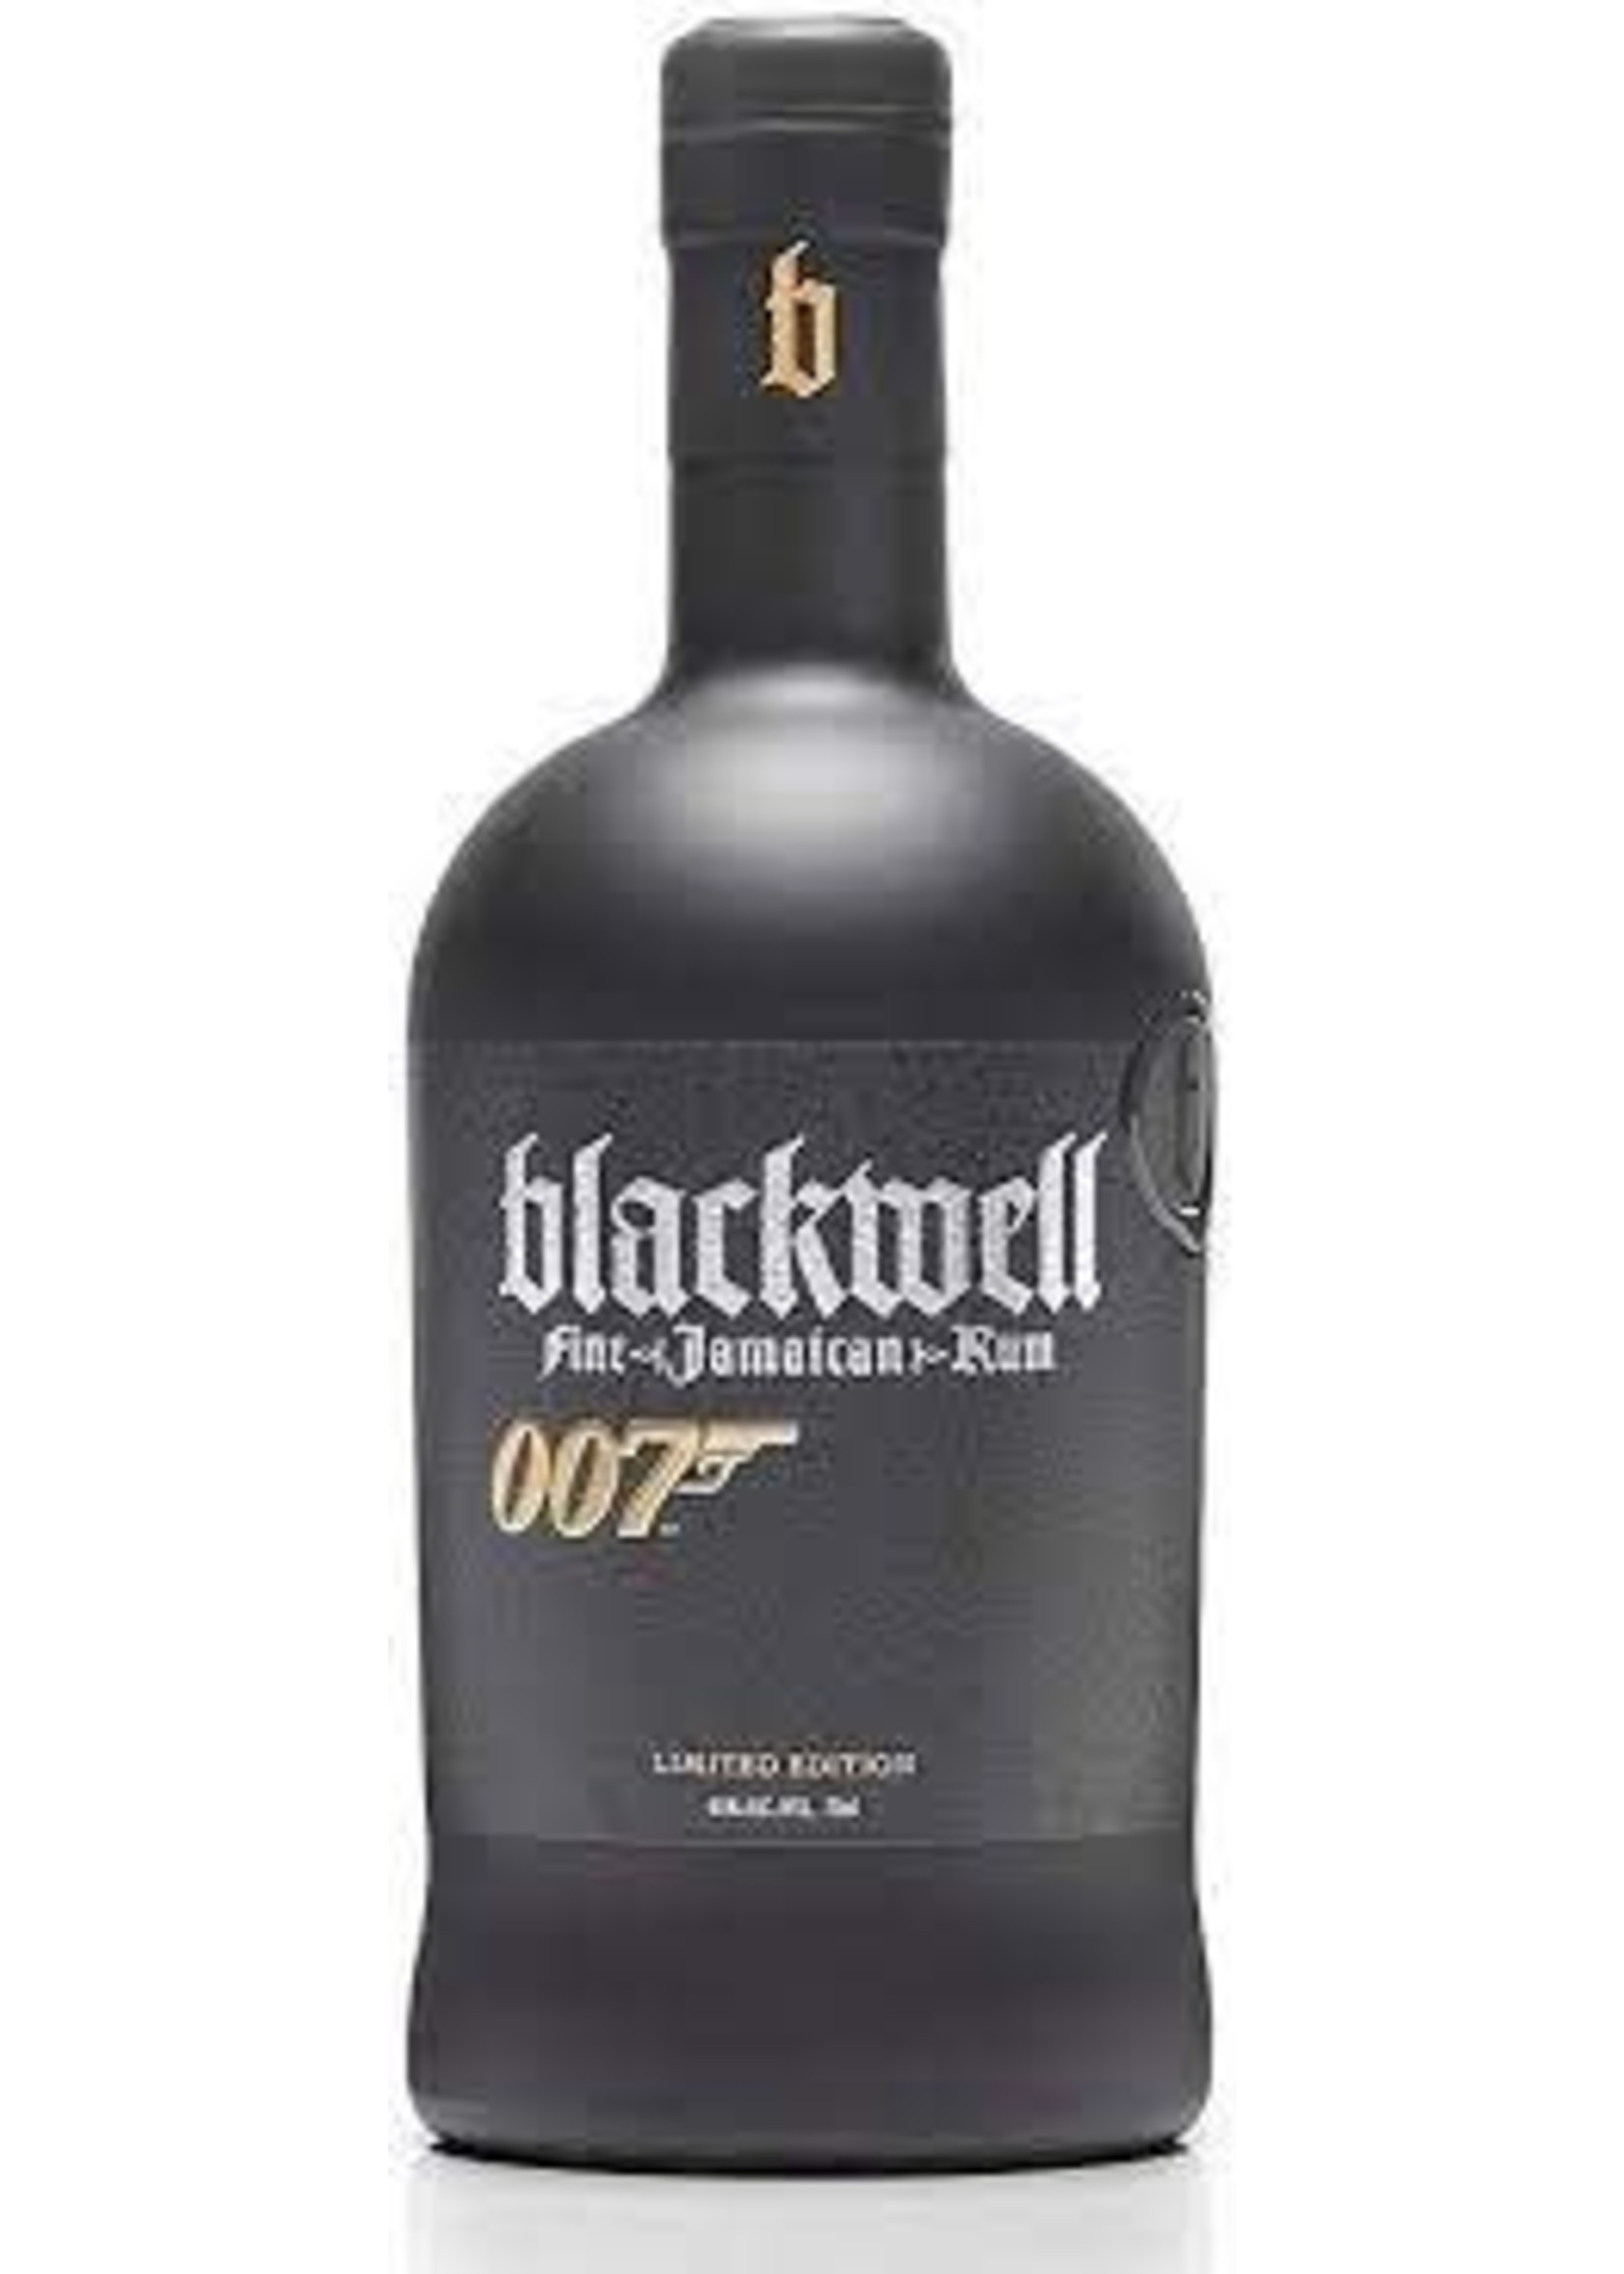 Blackwell Rum 007 Limited Edition 750ml